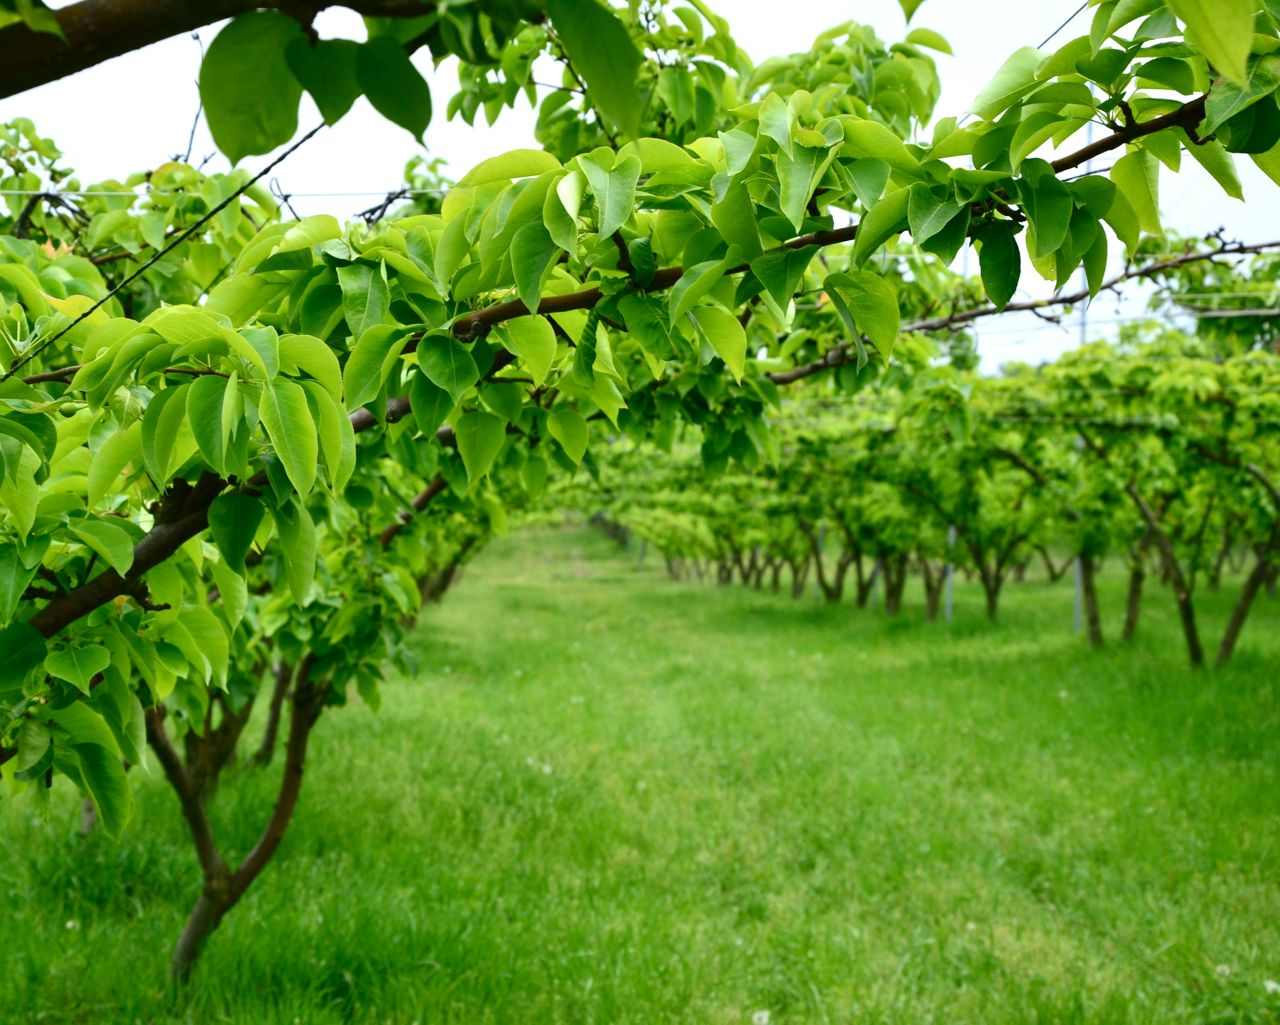 Korean Pear (Shingo) orchard